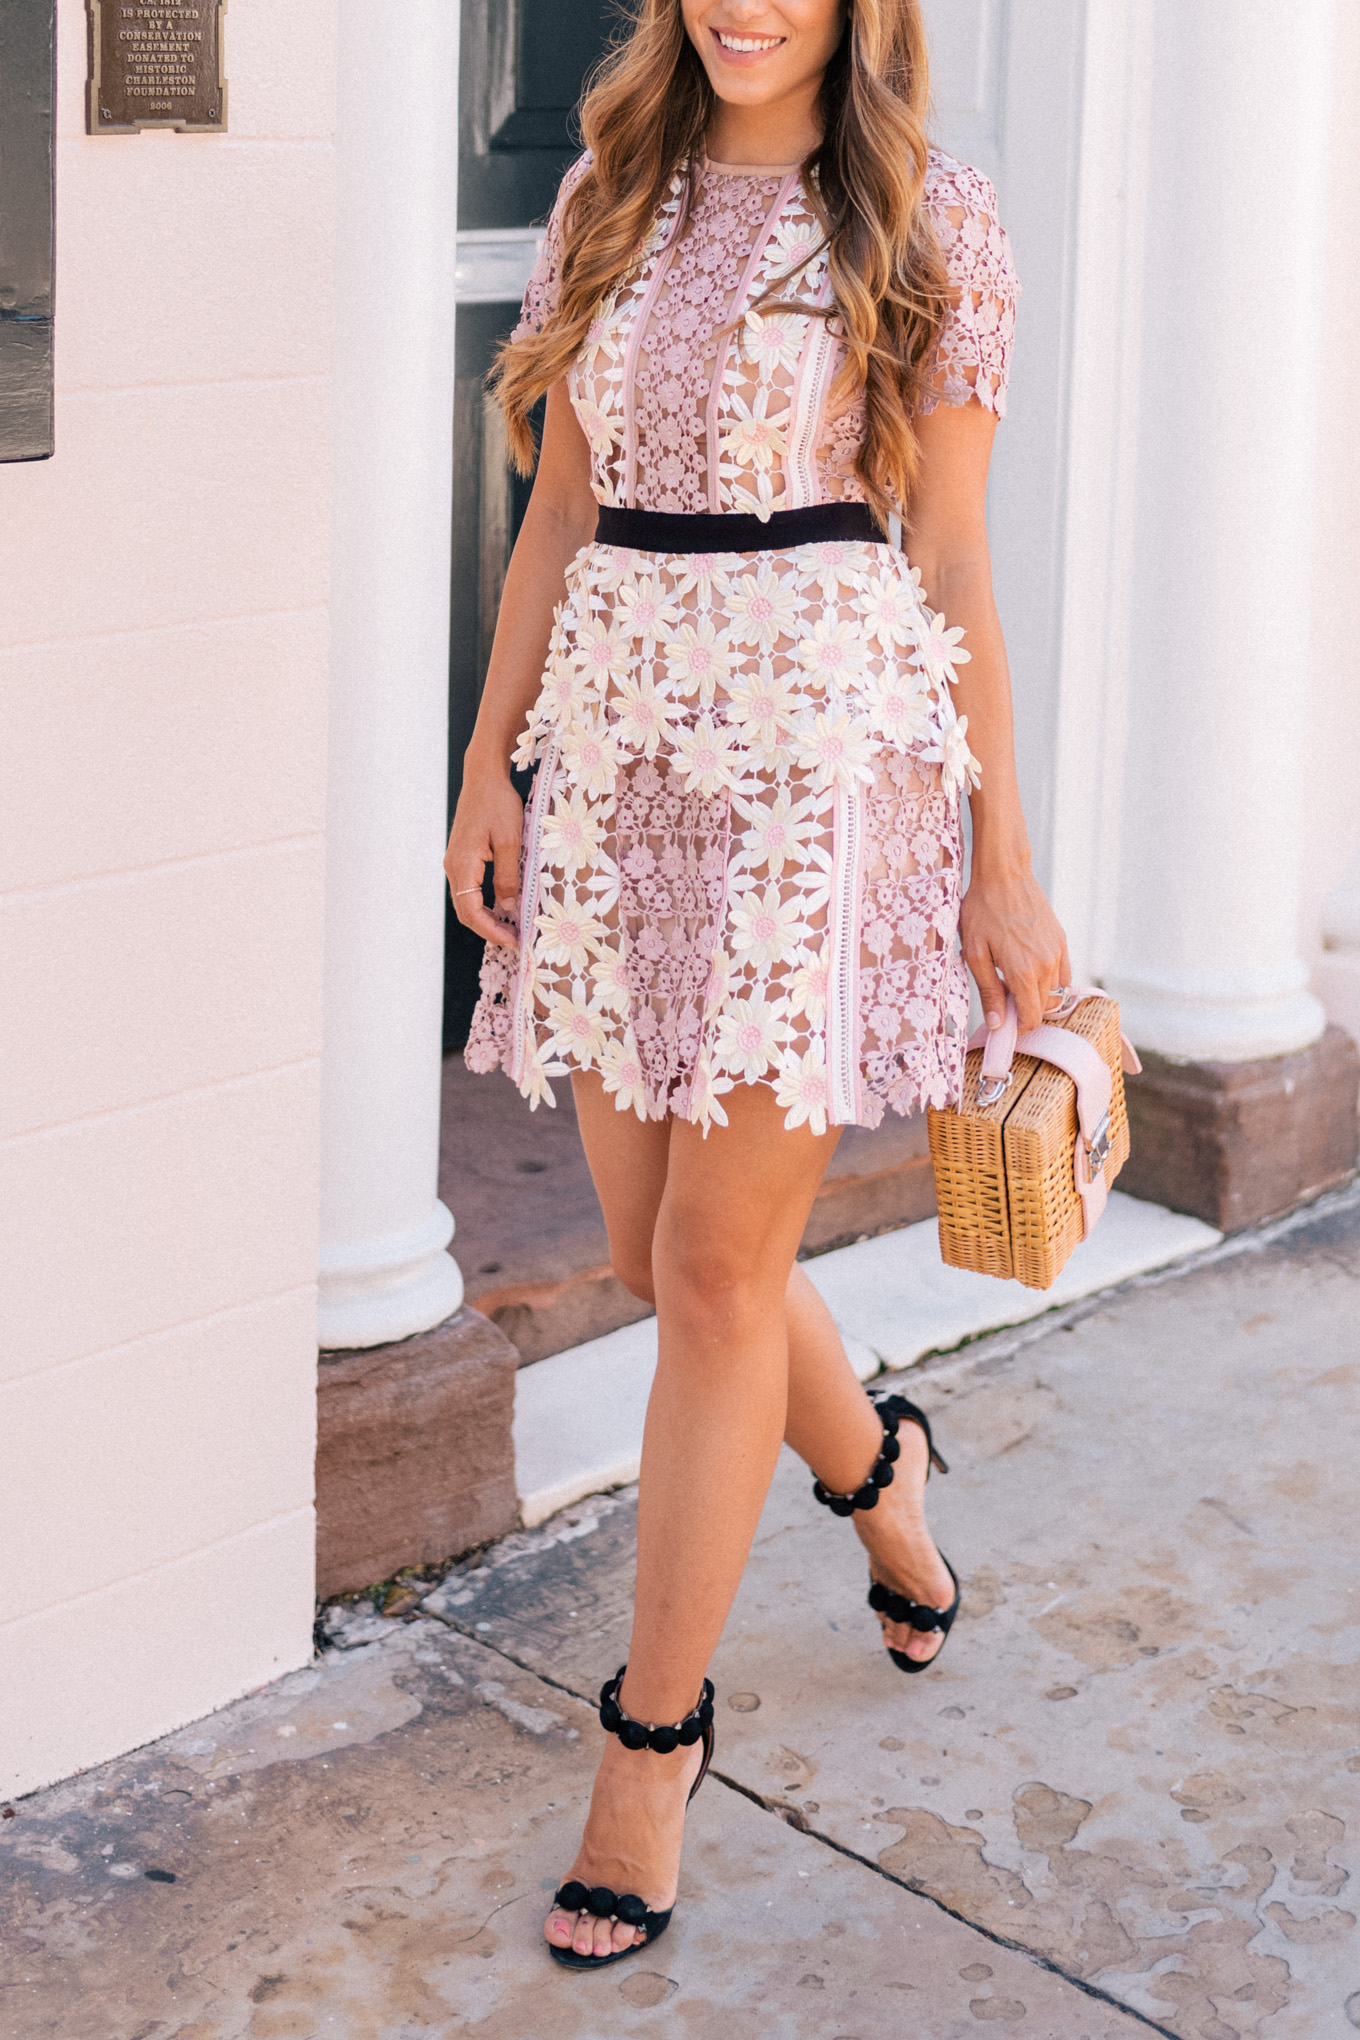 gmg-day-to-date-night-look-1001445